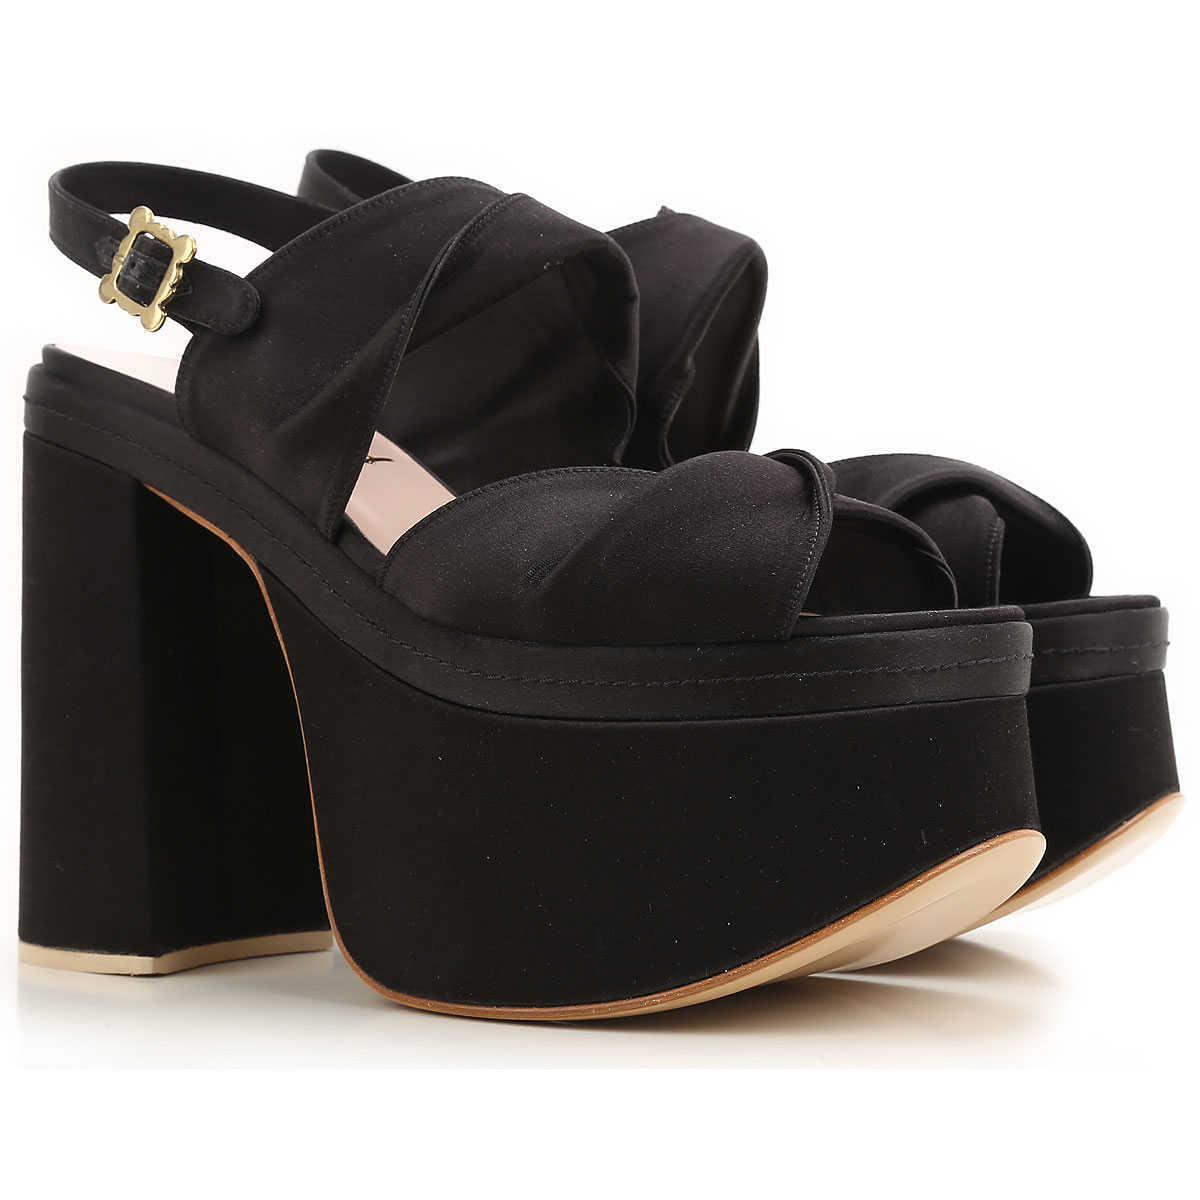 Vivienne Westwood Wedges for Women On Sale Black DK - GOOFASH - Womens HOUSE SHOES